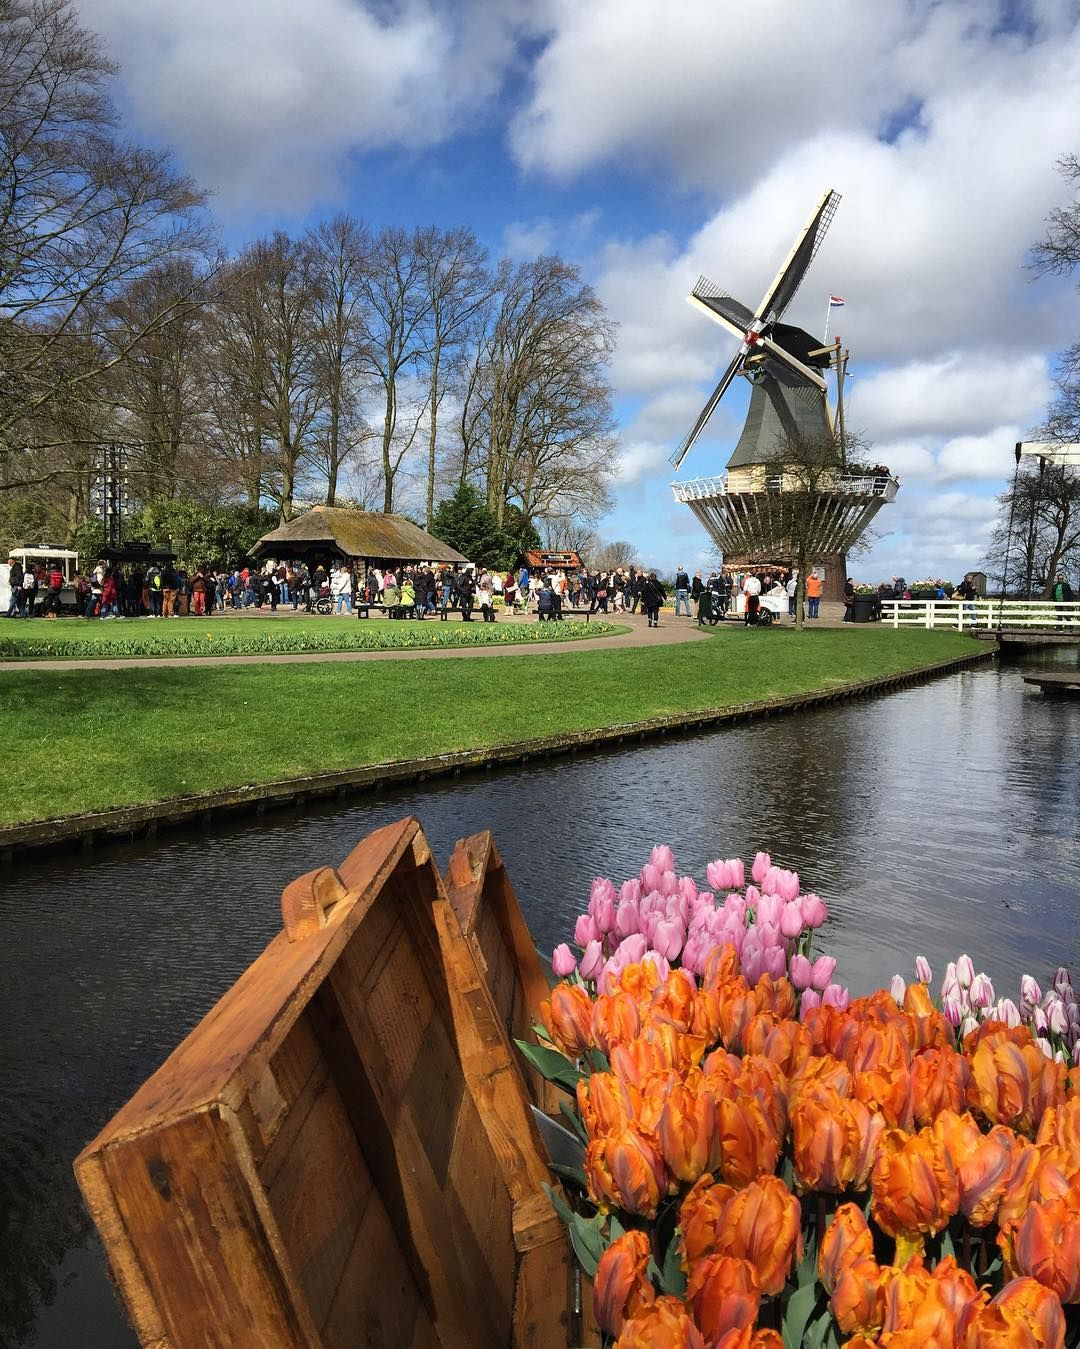 Keukenhof Flower Garden!) #nice #cool #beauty #sky #nature #